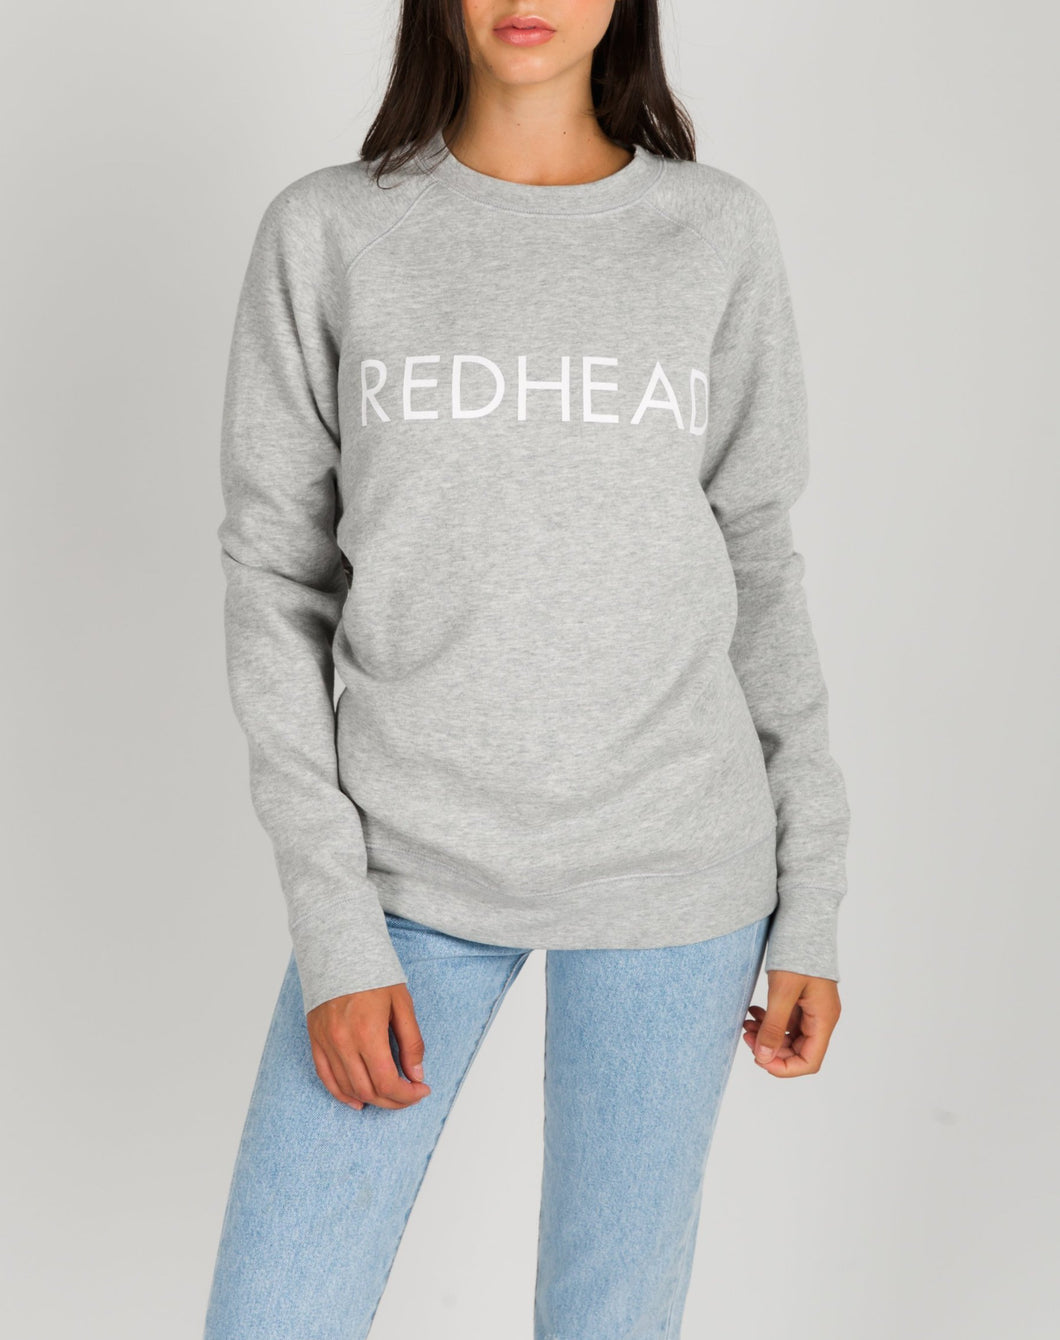 REDHEAD Crew // Brunette the Label